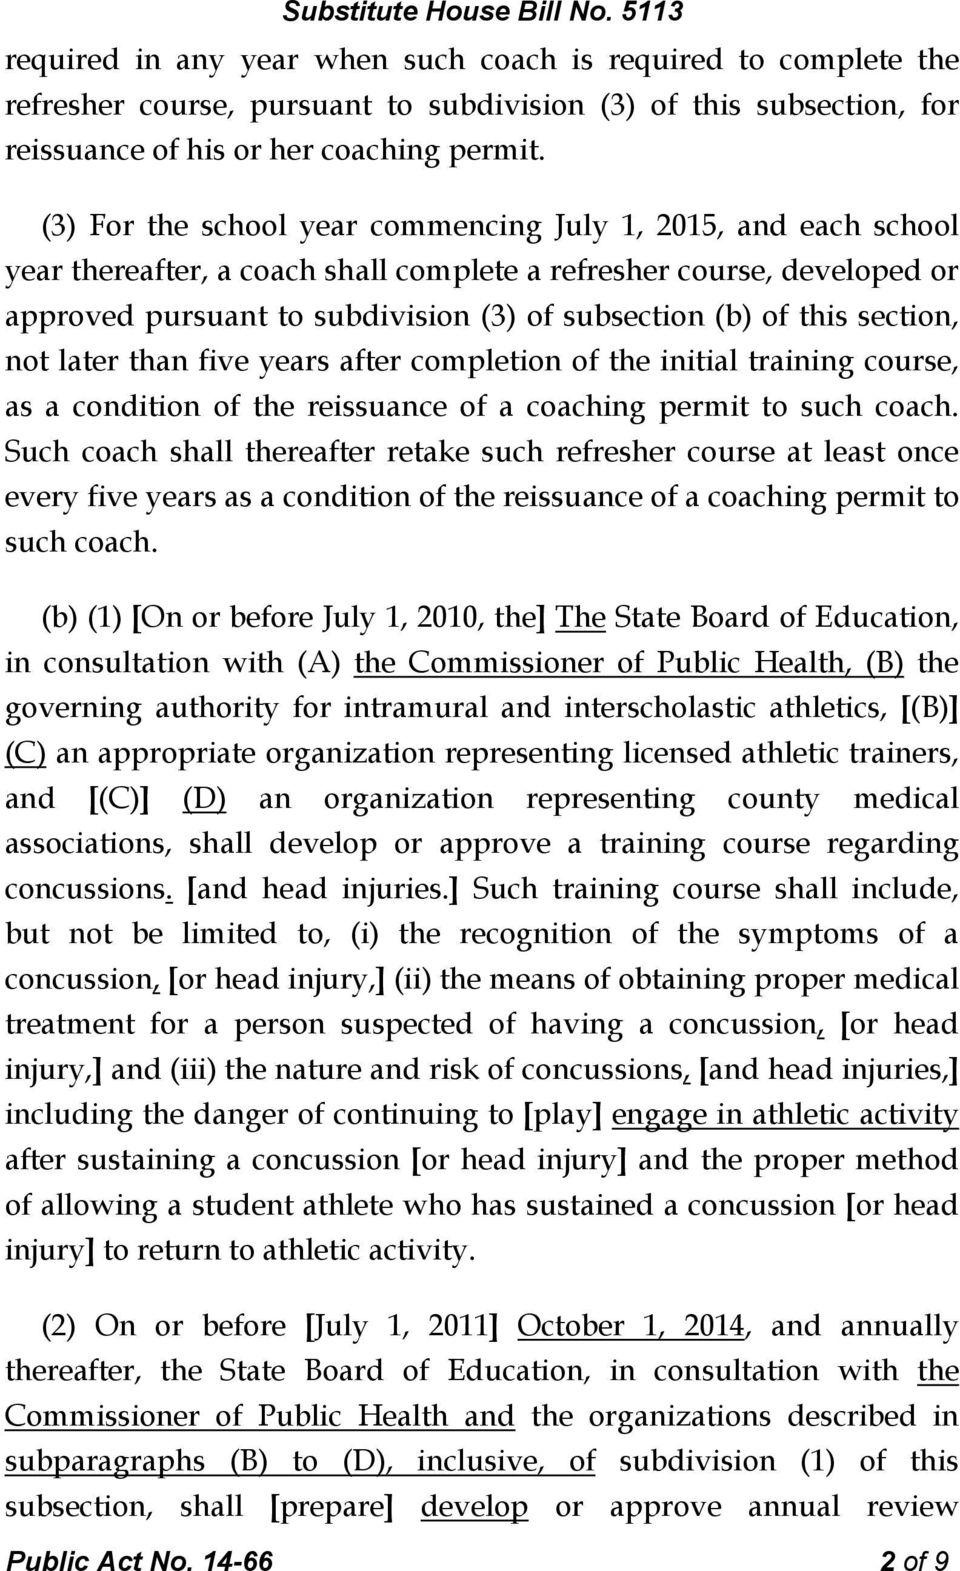 this section, not later than five years after completion of the initial training course, as a condition of the reissuance of a coaching permit to such coach.